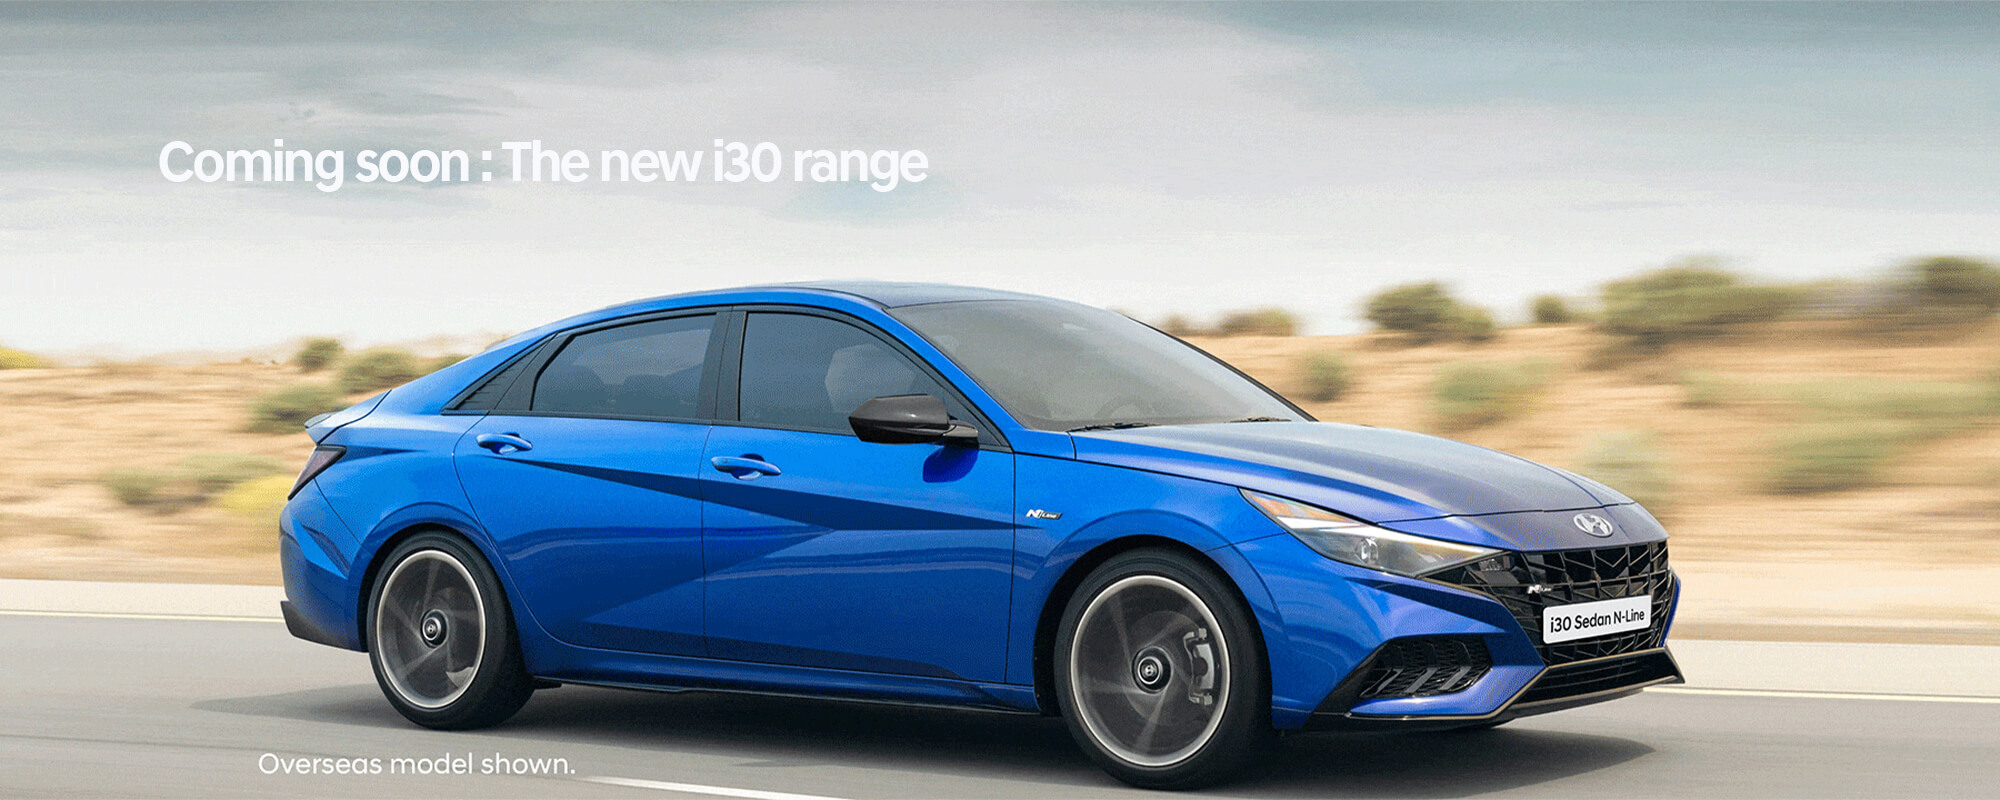 All-new Hyundai i30 Sedan coming soon. Register your interest to experience the new i30 range.